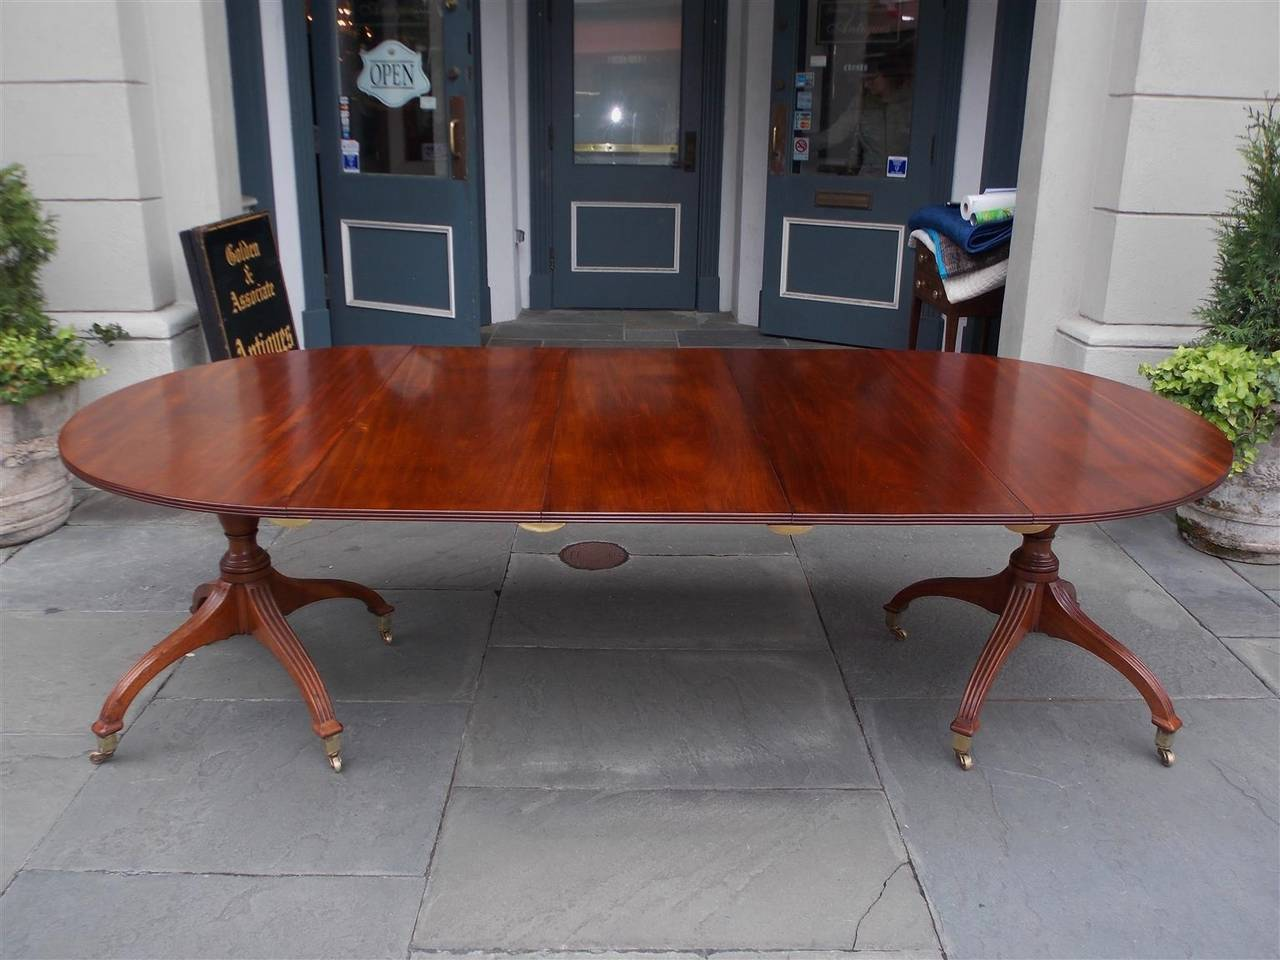 English mahogany three leaf double pedestal dining table with reeded molded edge, turned bulbous pedestals, resting on reeded saber legs with original brass cup casters. Early 19th century. Table has three removable leaves. 95